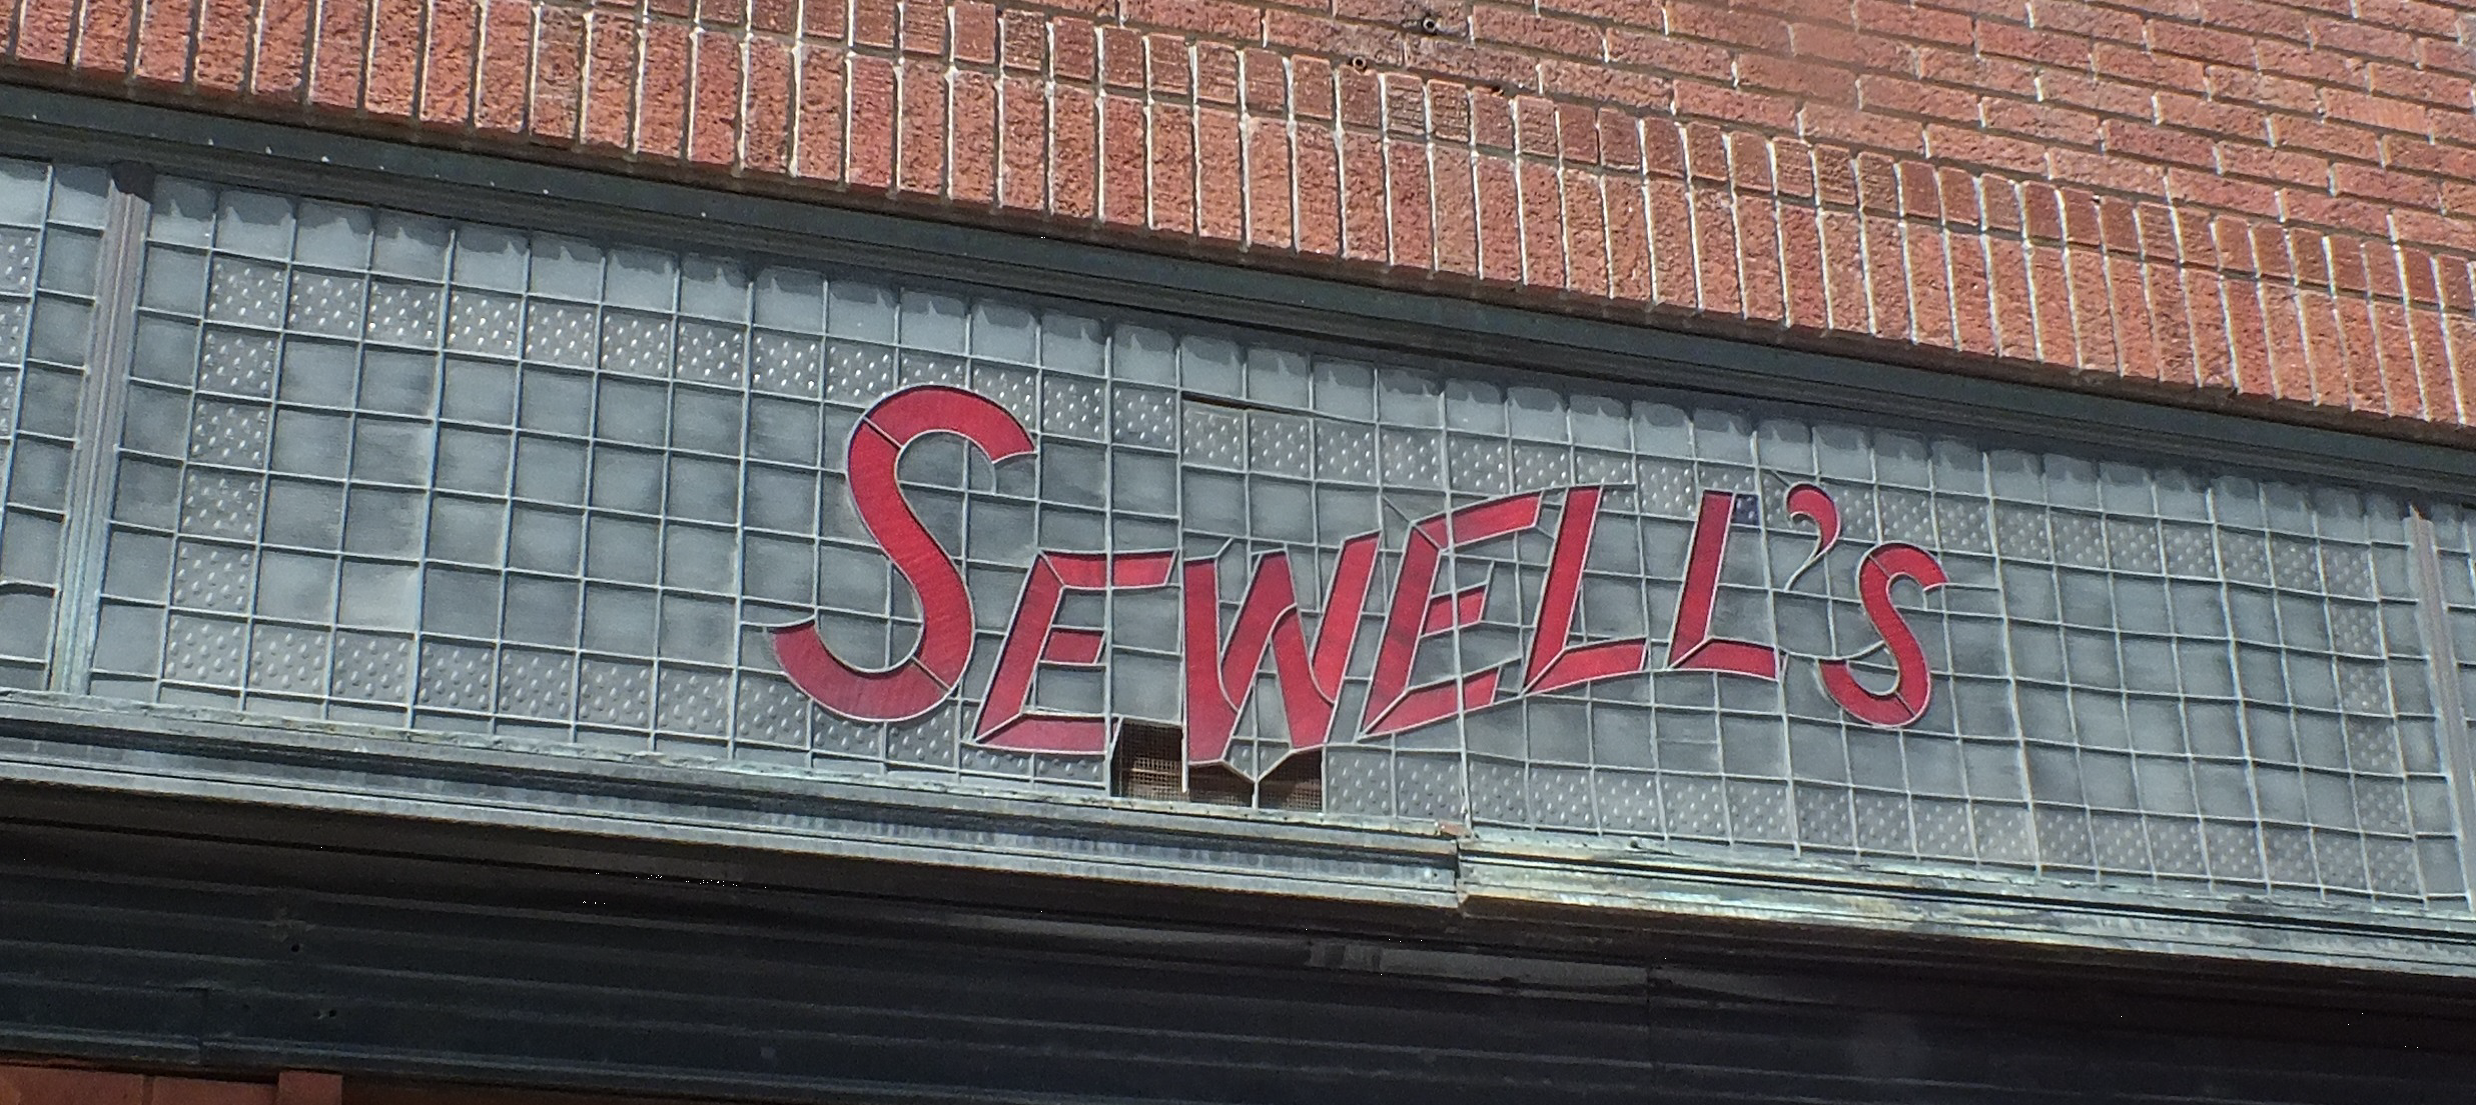 The Sewell's sign at 221 East Park Street before being removed for restoration.